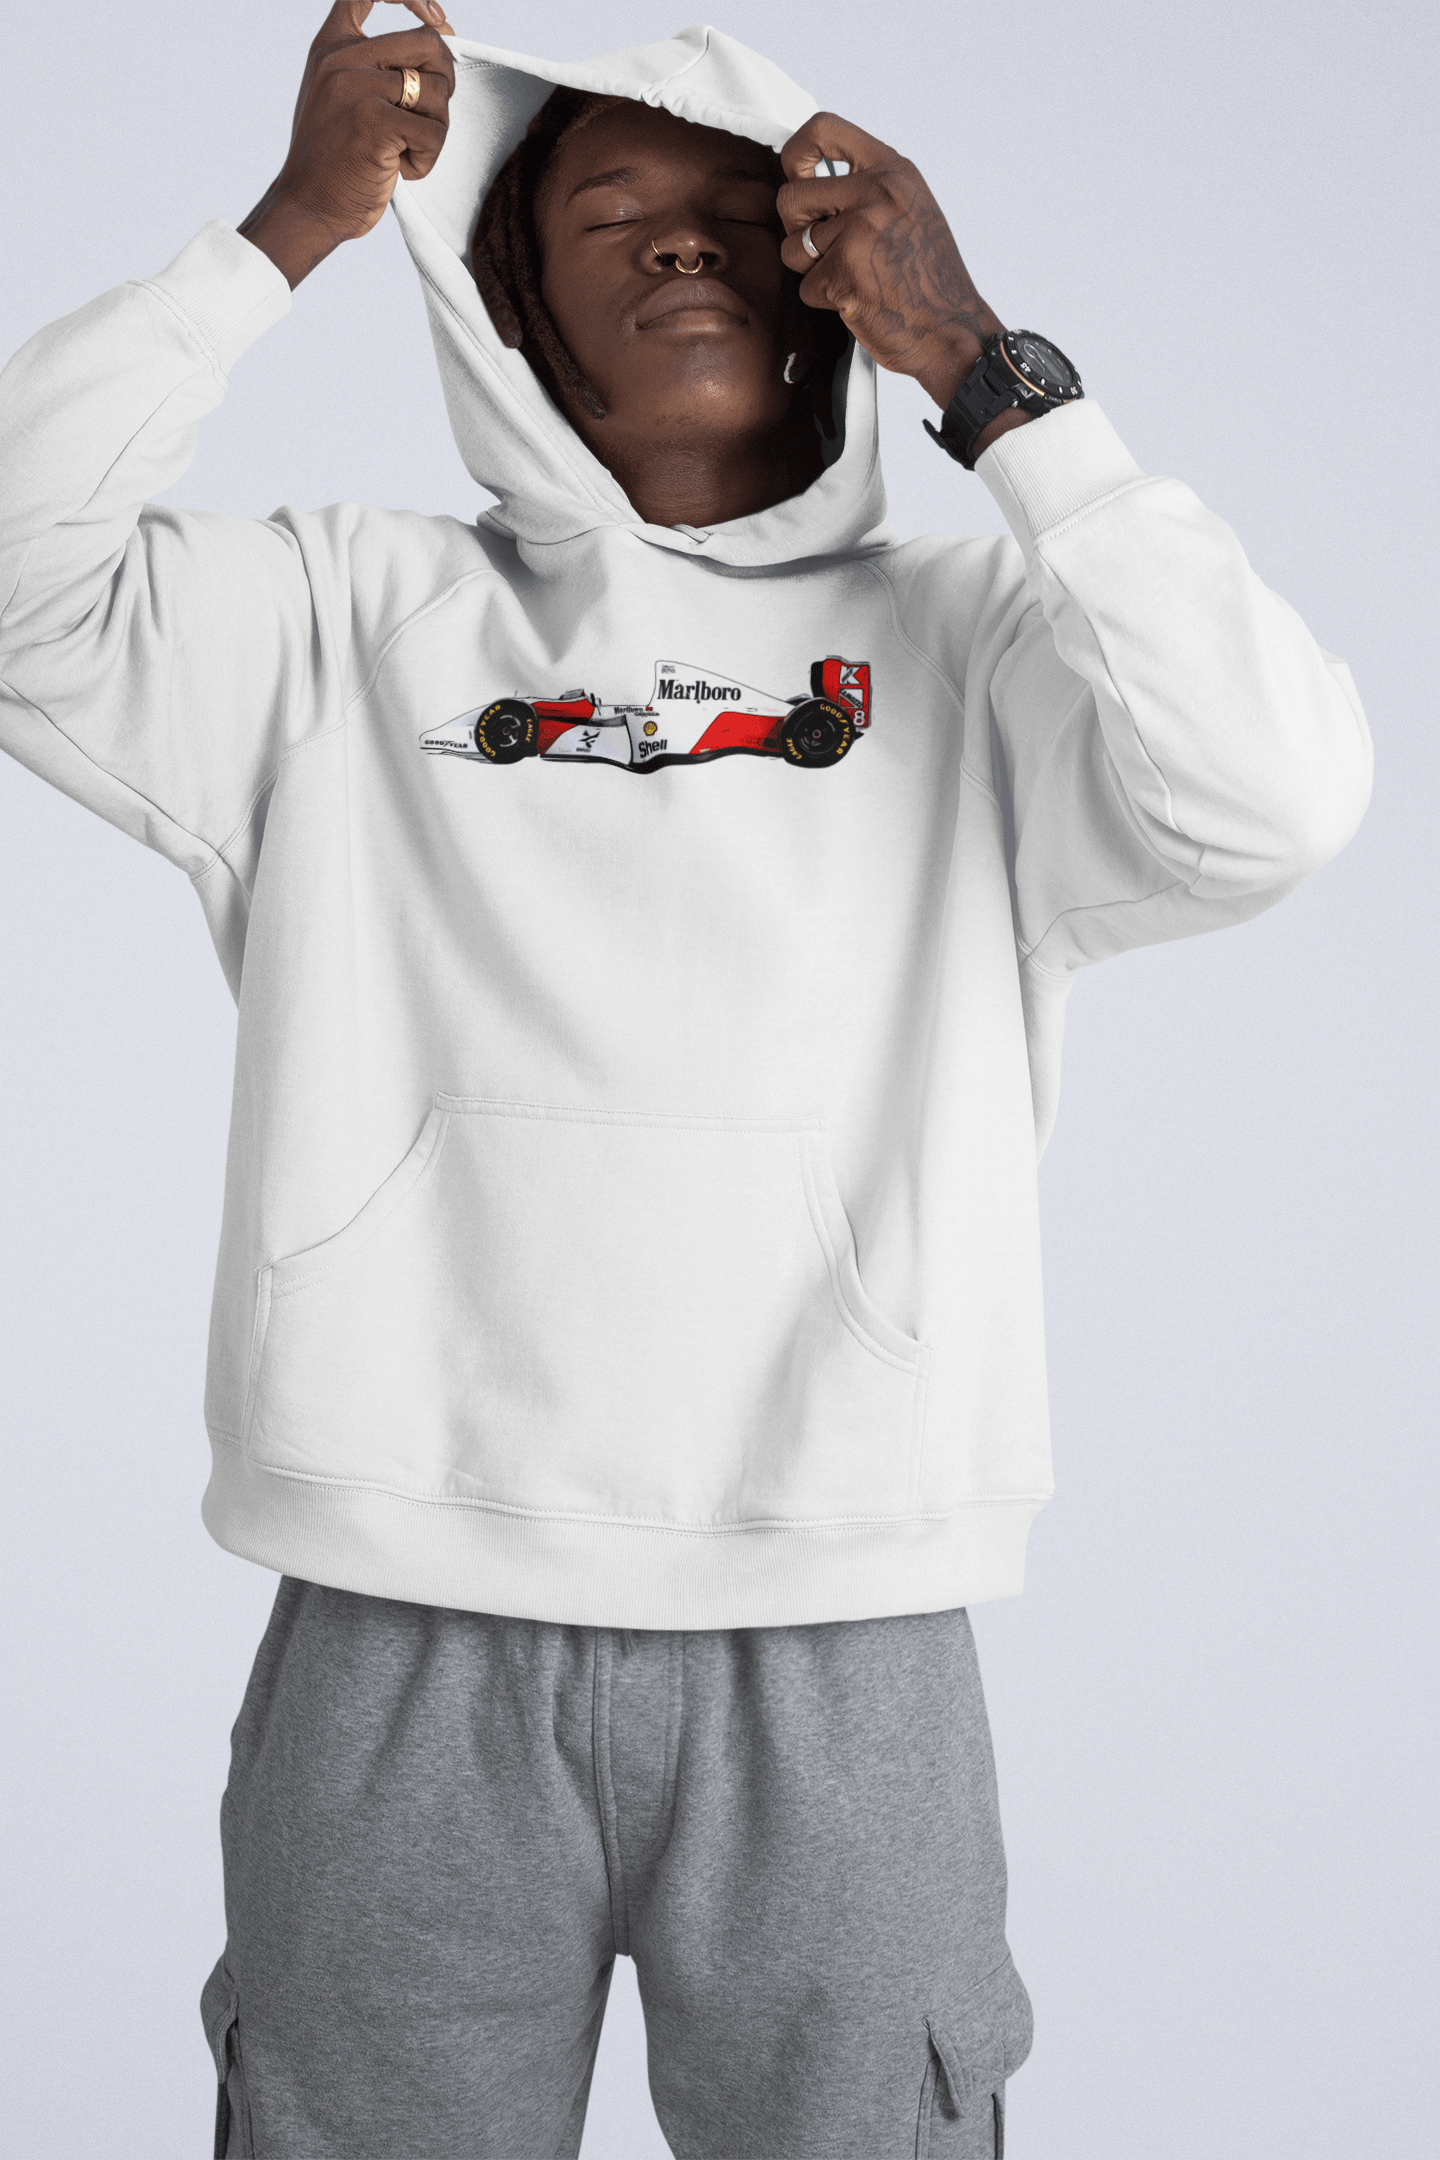 Senna's 1993 McLaren MP4-8 Hooded Sweatshirt